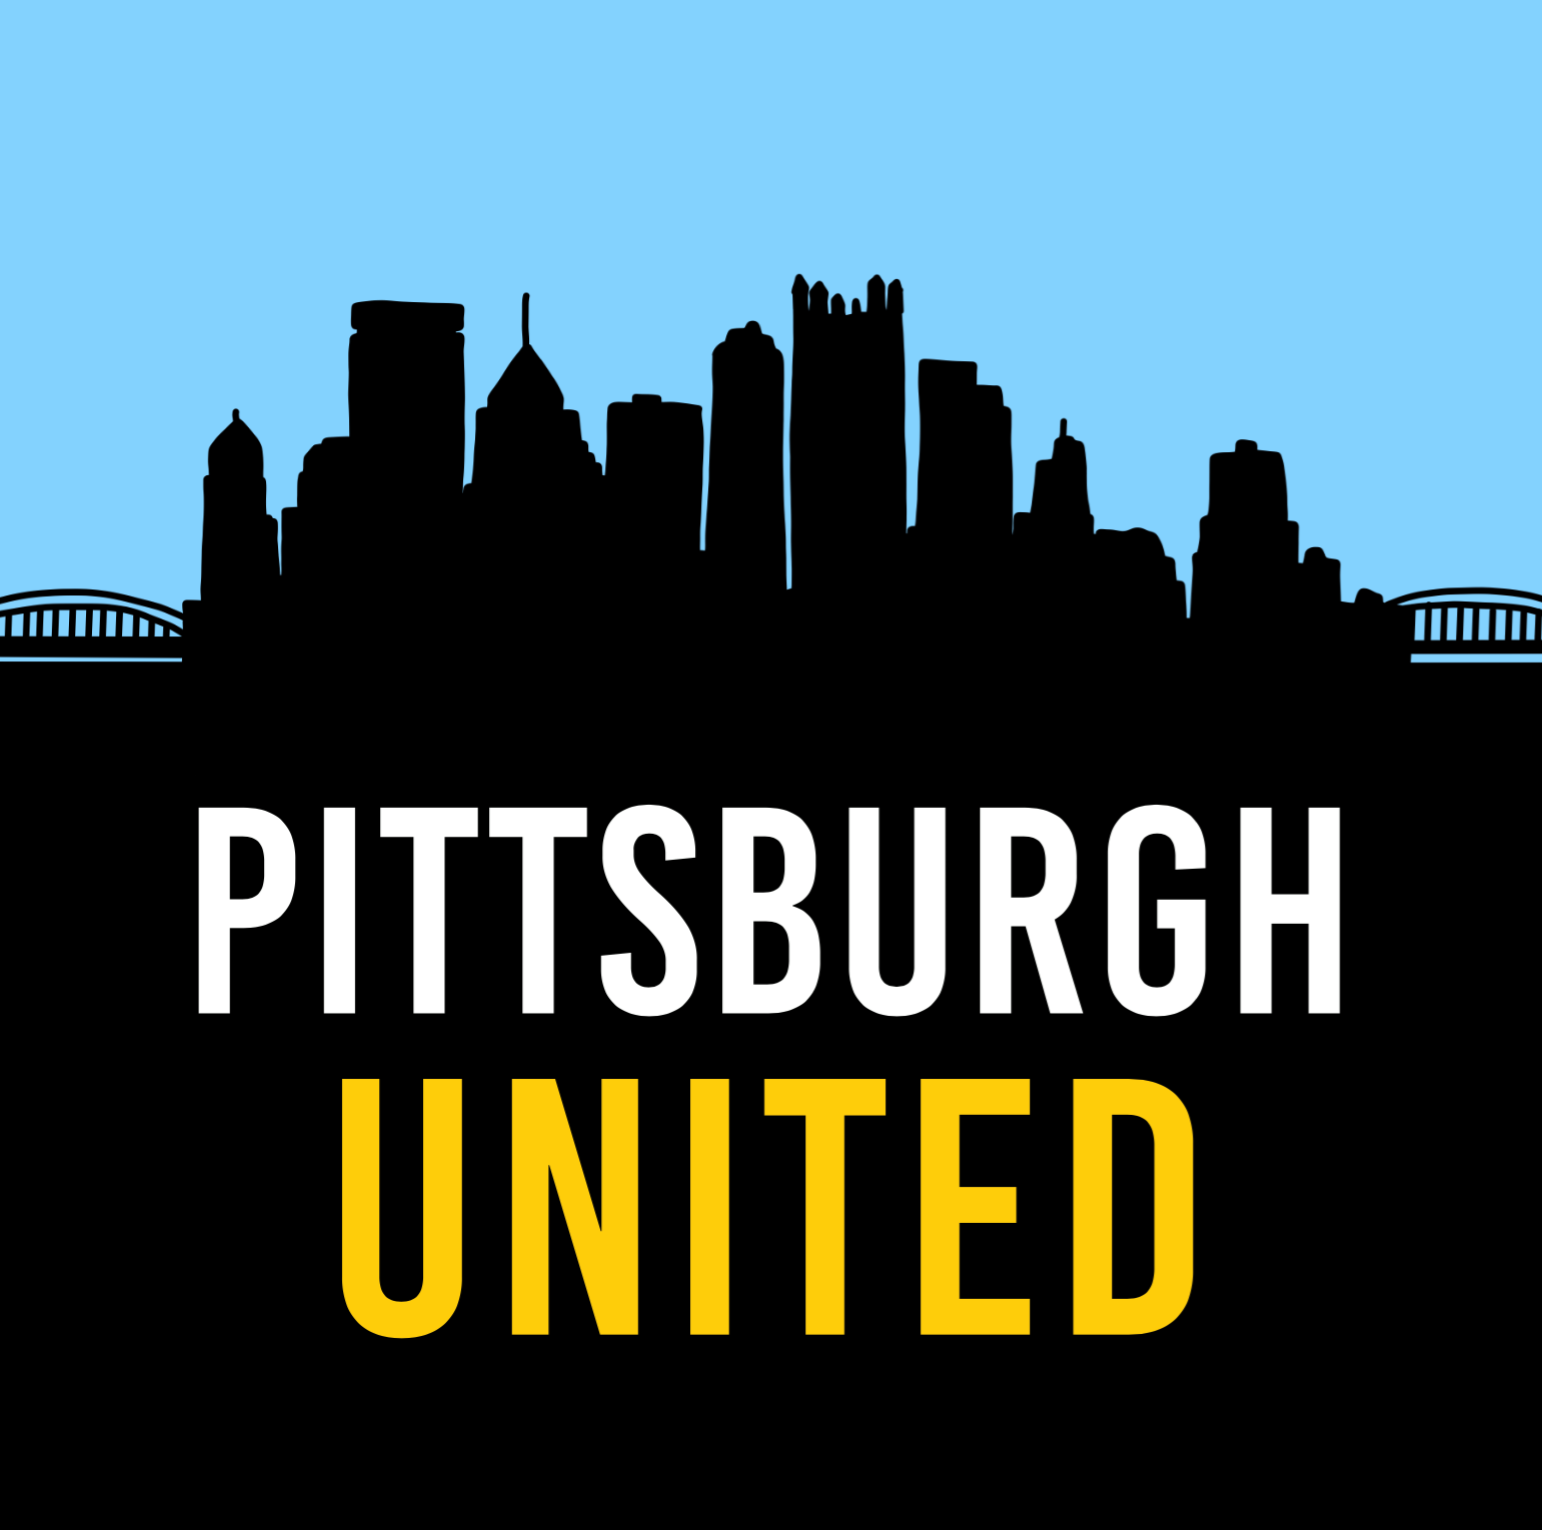 Pittsburgh UNITED